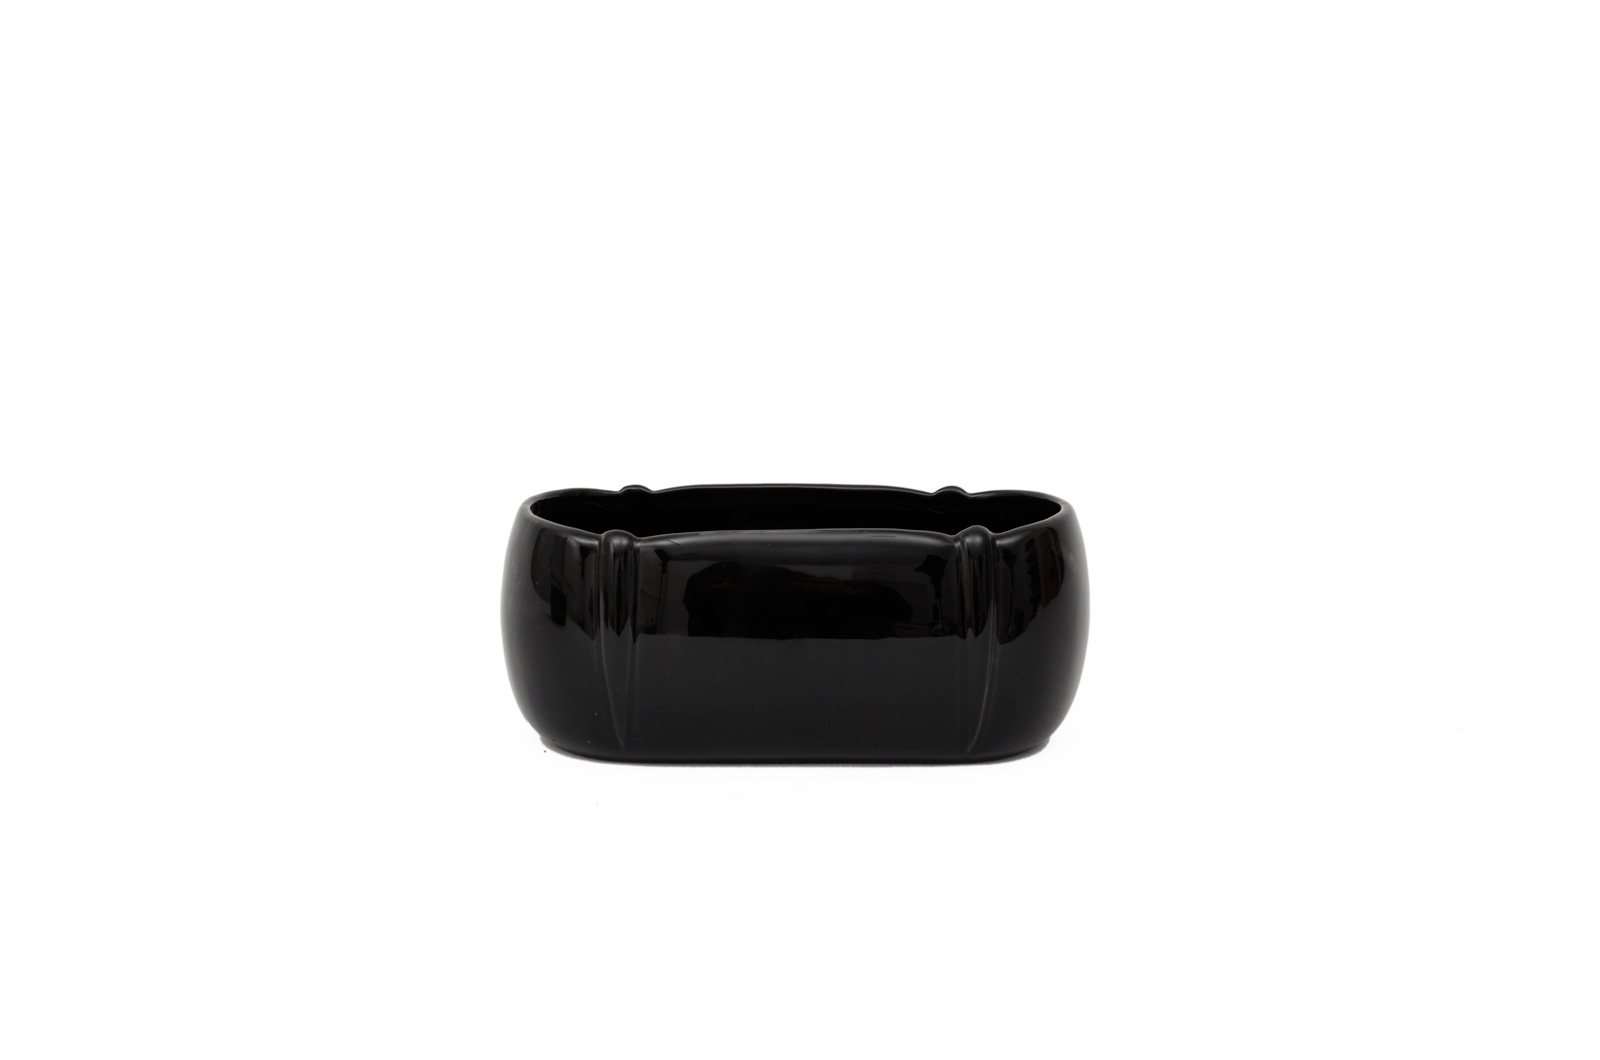 VASE OVAL 20X11X9CM PAINTED BLACK